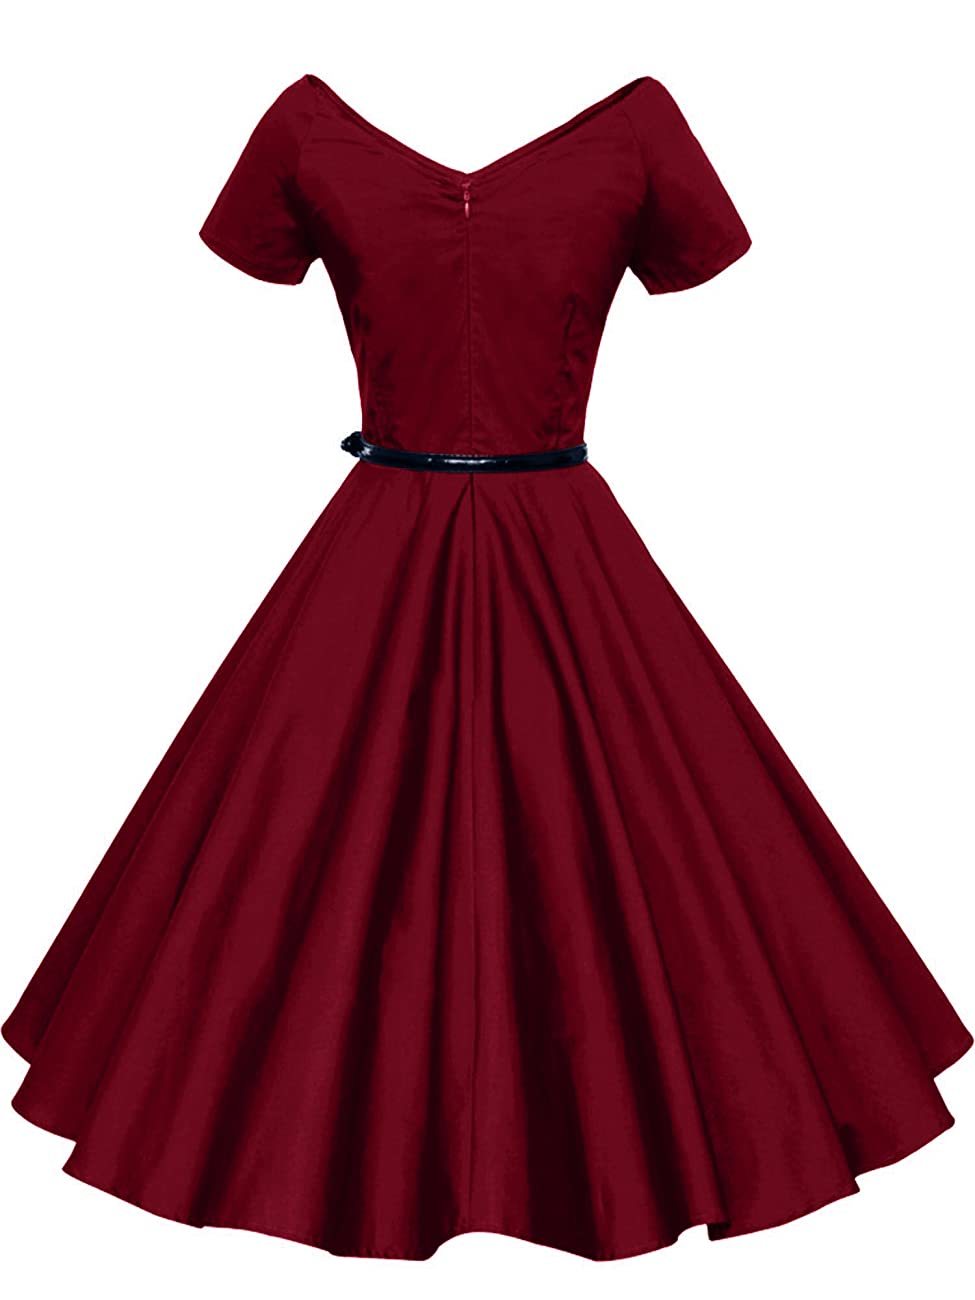 iLover Women 1950s V-Neck Vintage Rockabilly Swing Evening Party Dress 1